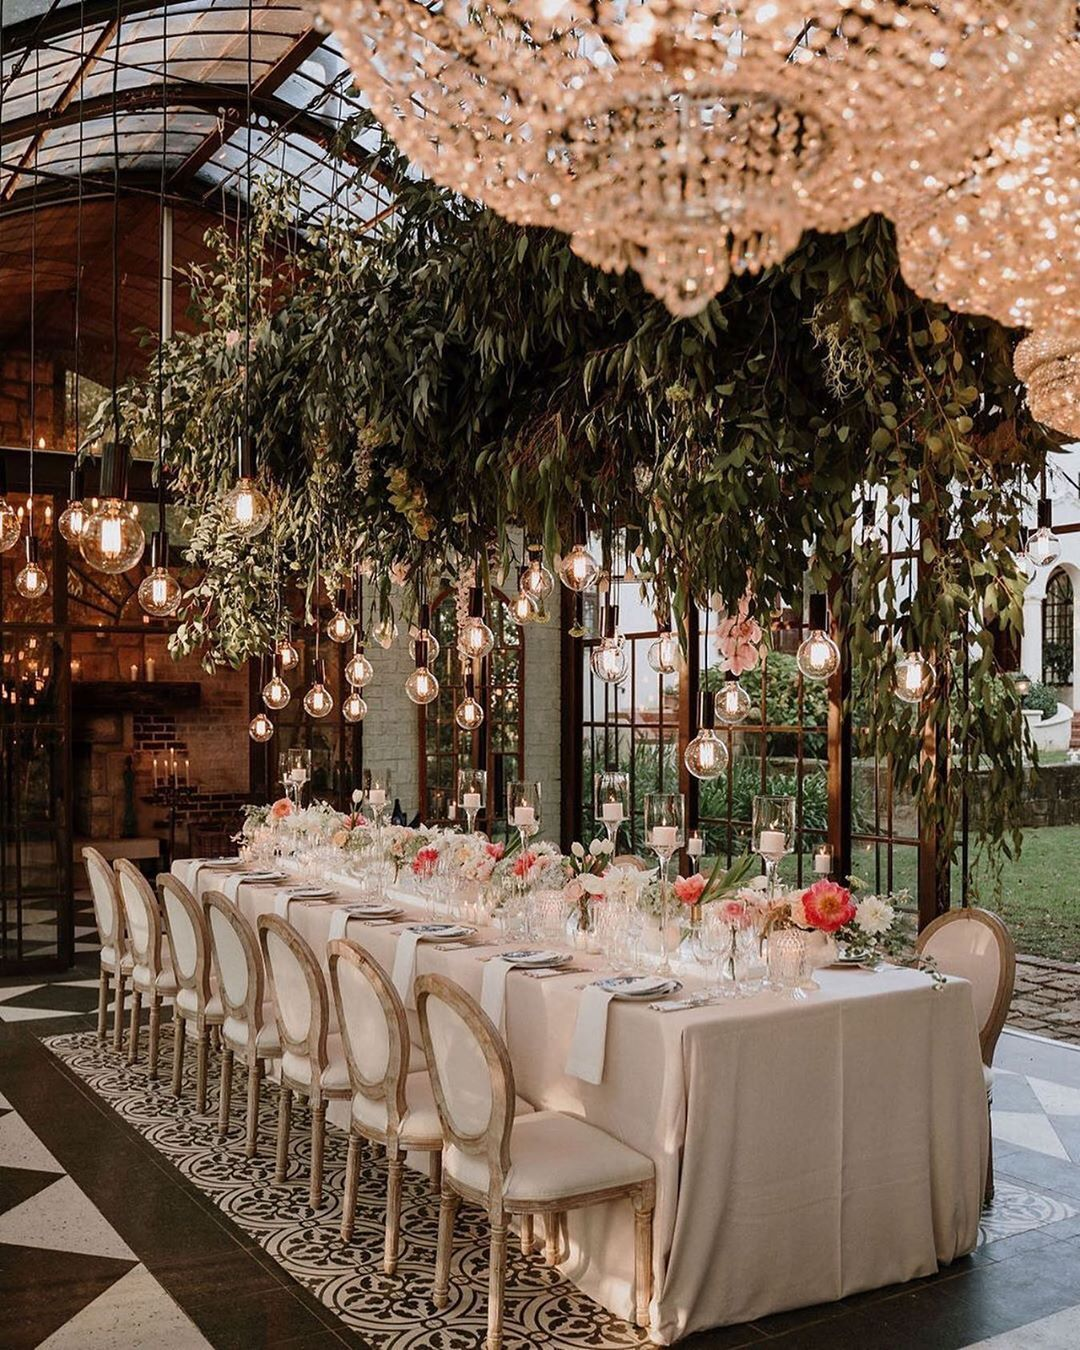 Wedding Decor Inspiration On Instagram This Beautiful Private Conservatory Was Tra Intimate Wedding Reception Whimsical Wedding Decorations Whimsical Wedding